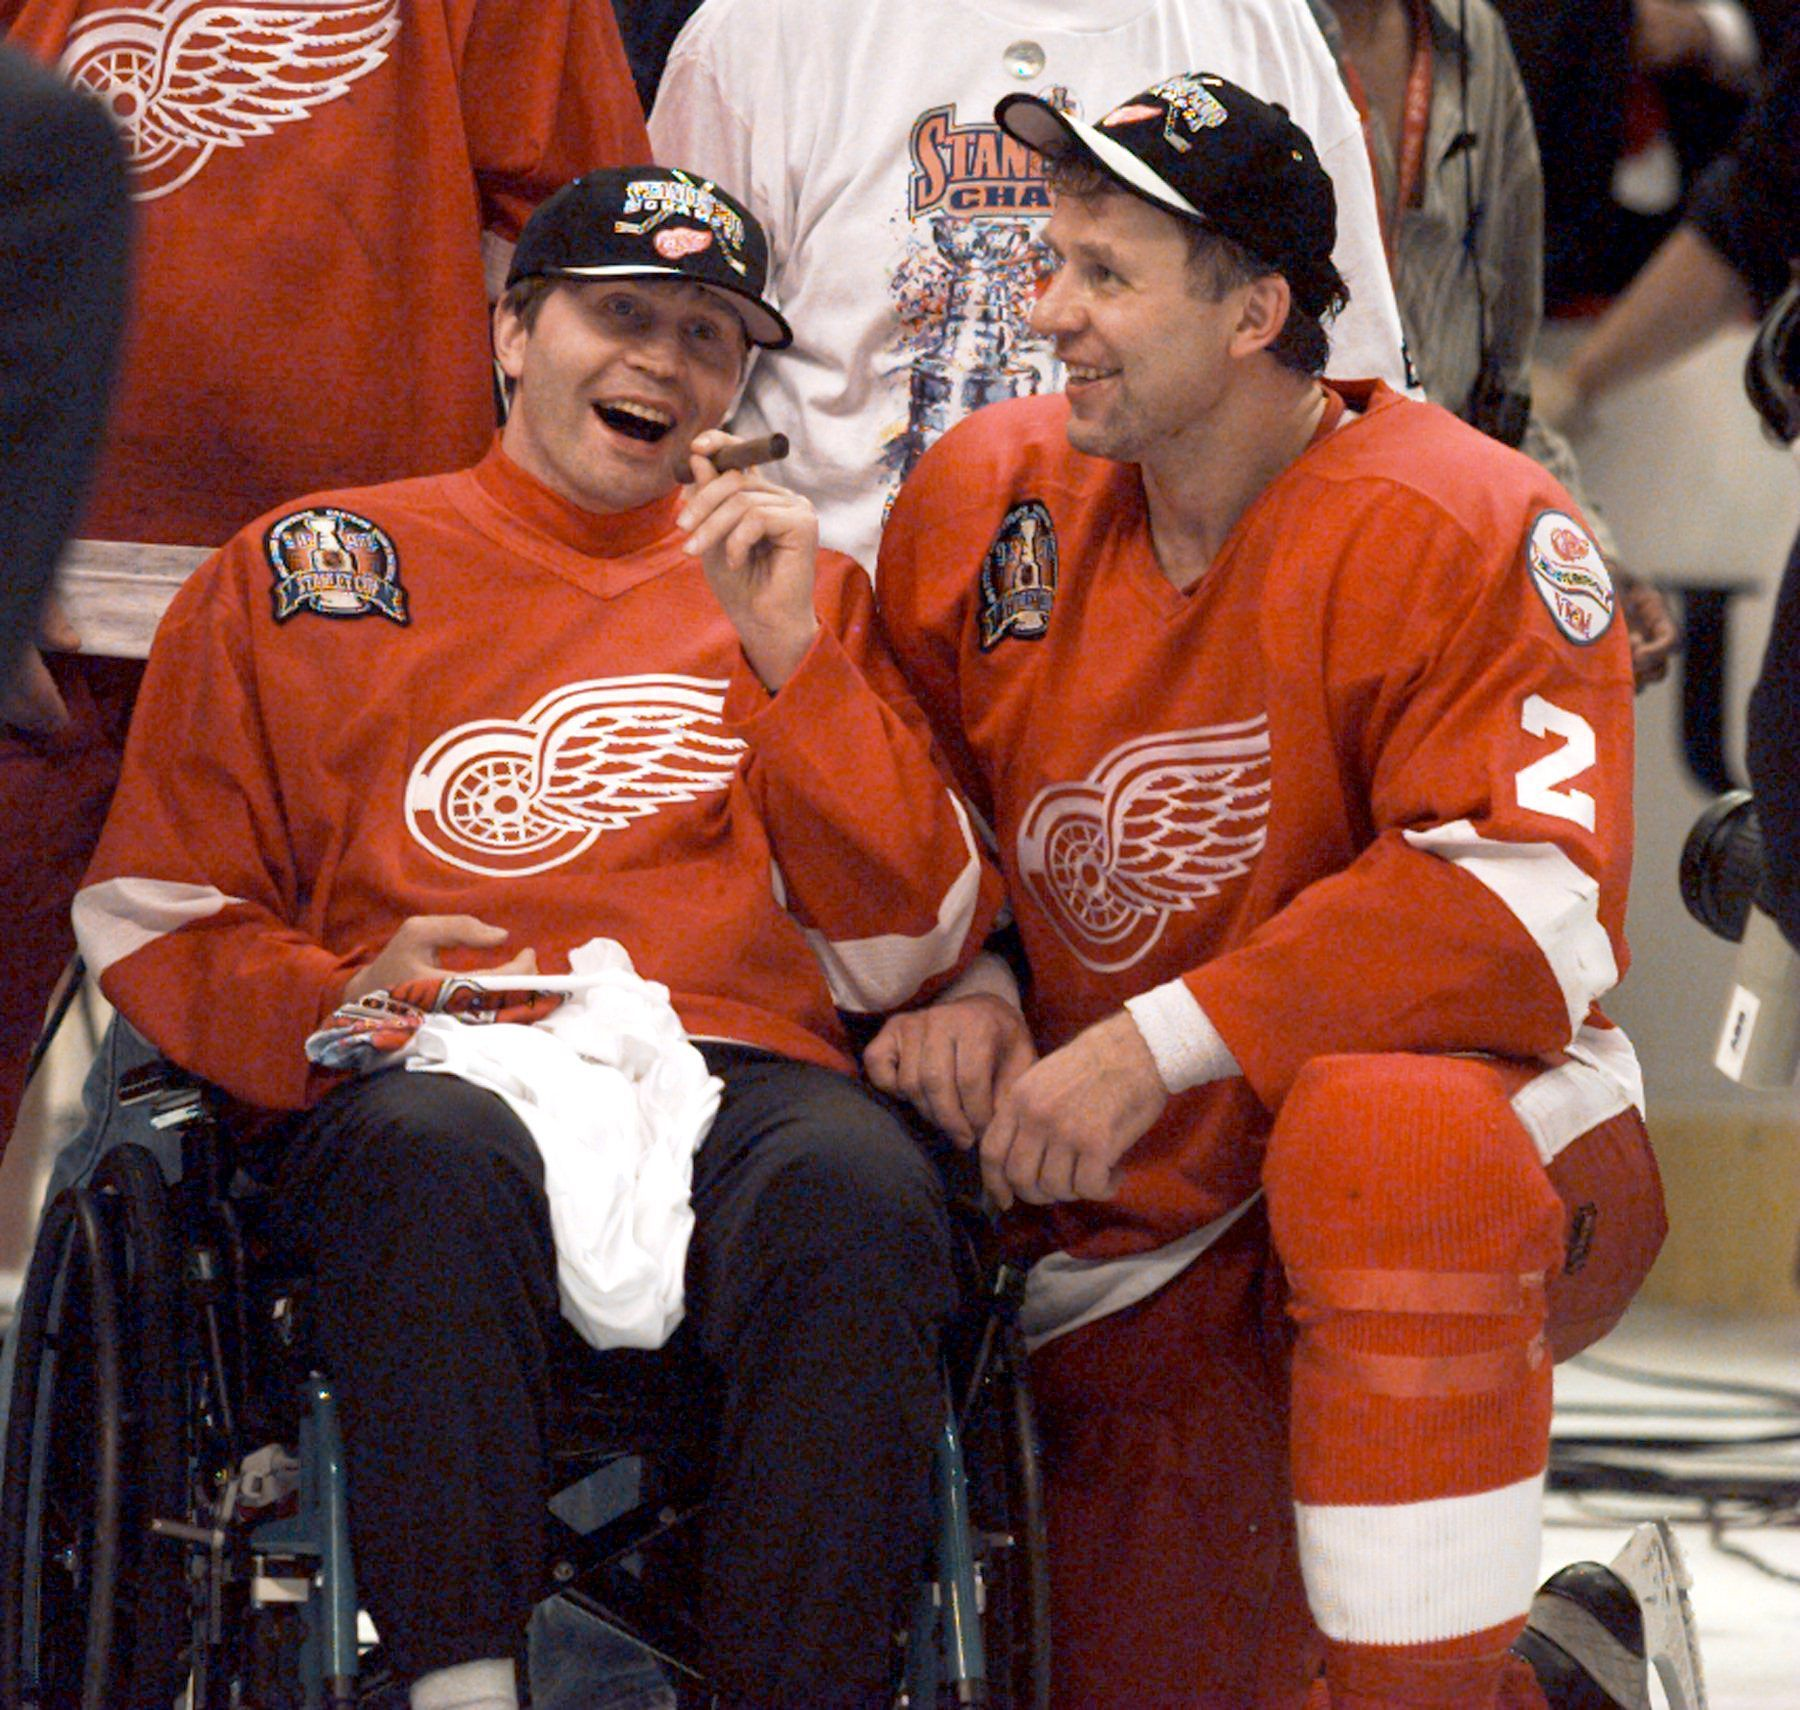 Vladimir Konstantinov and his untold battle after fateful limo crash